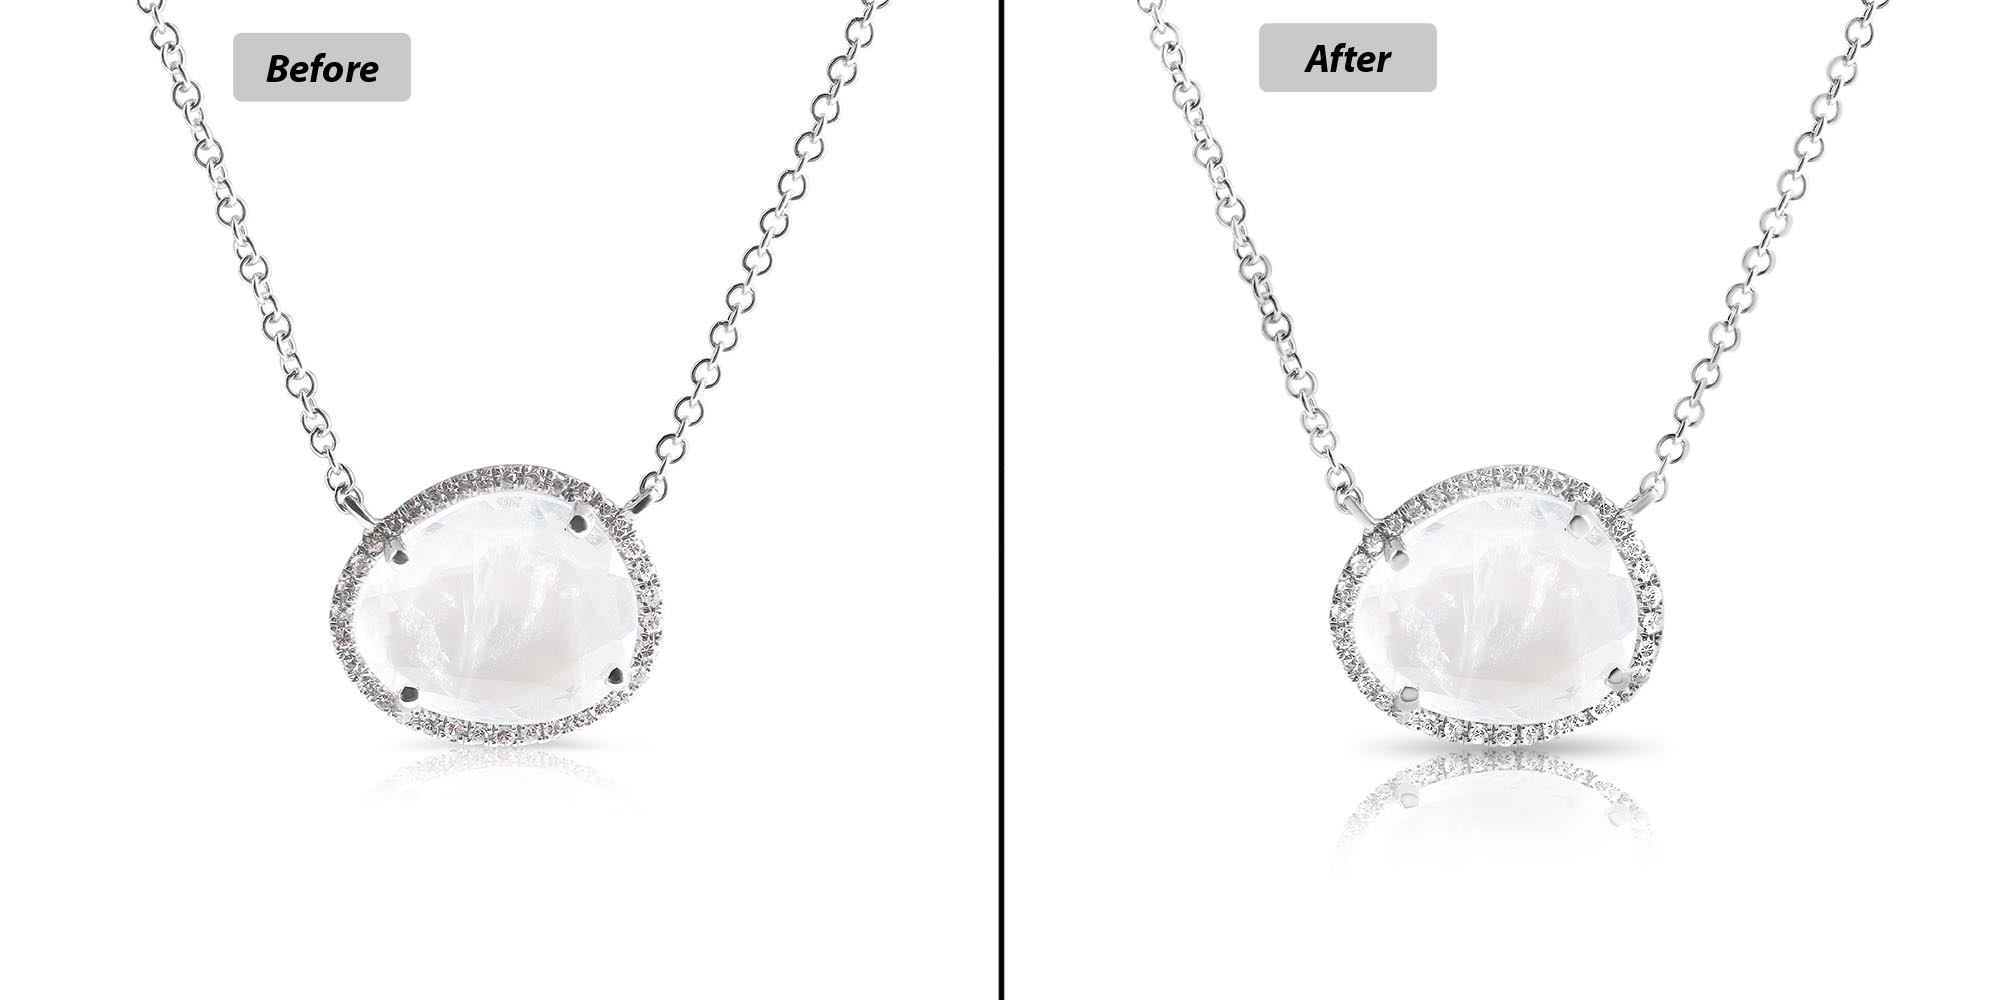 Clipping Charm_Jewellery retouch 0109